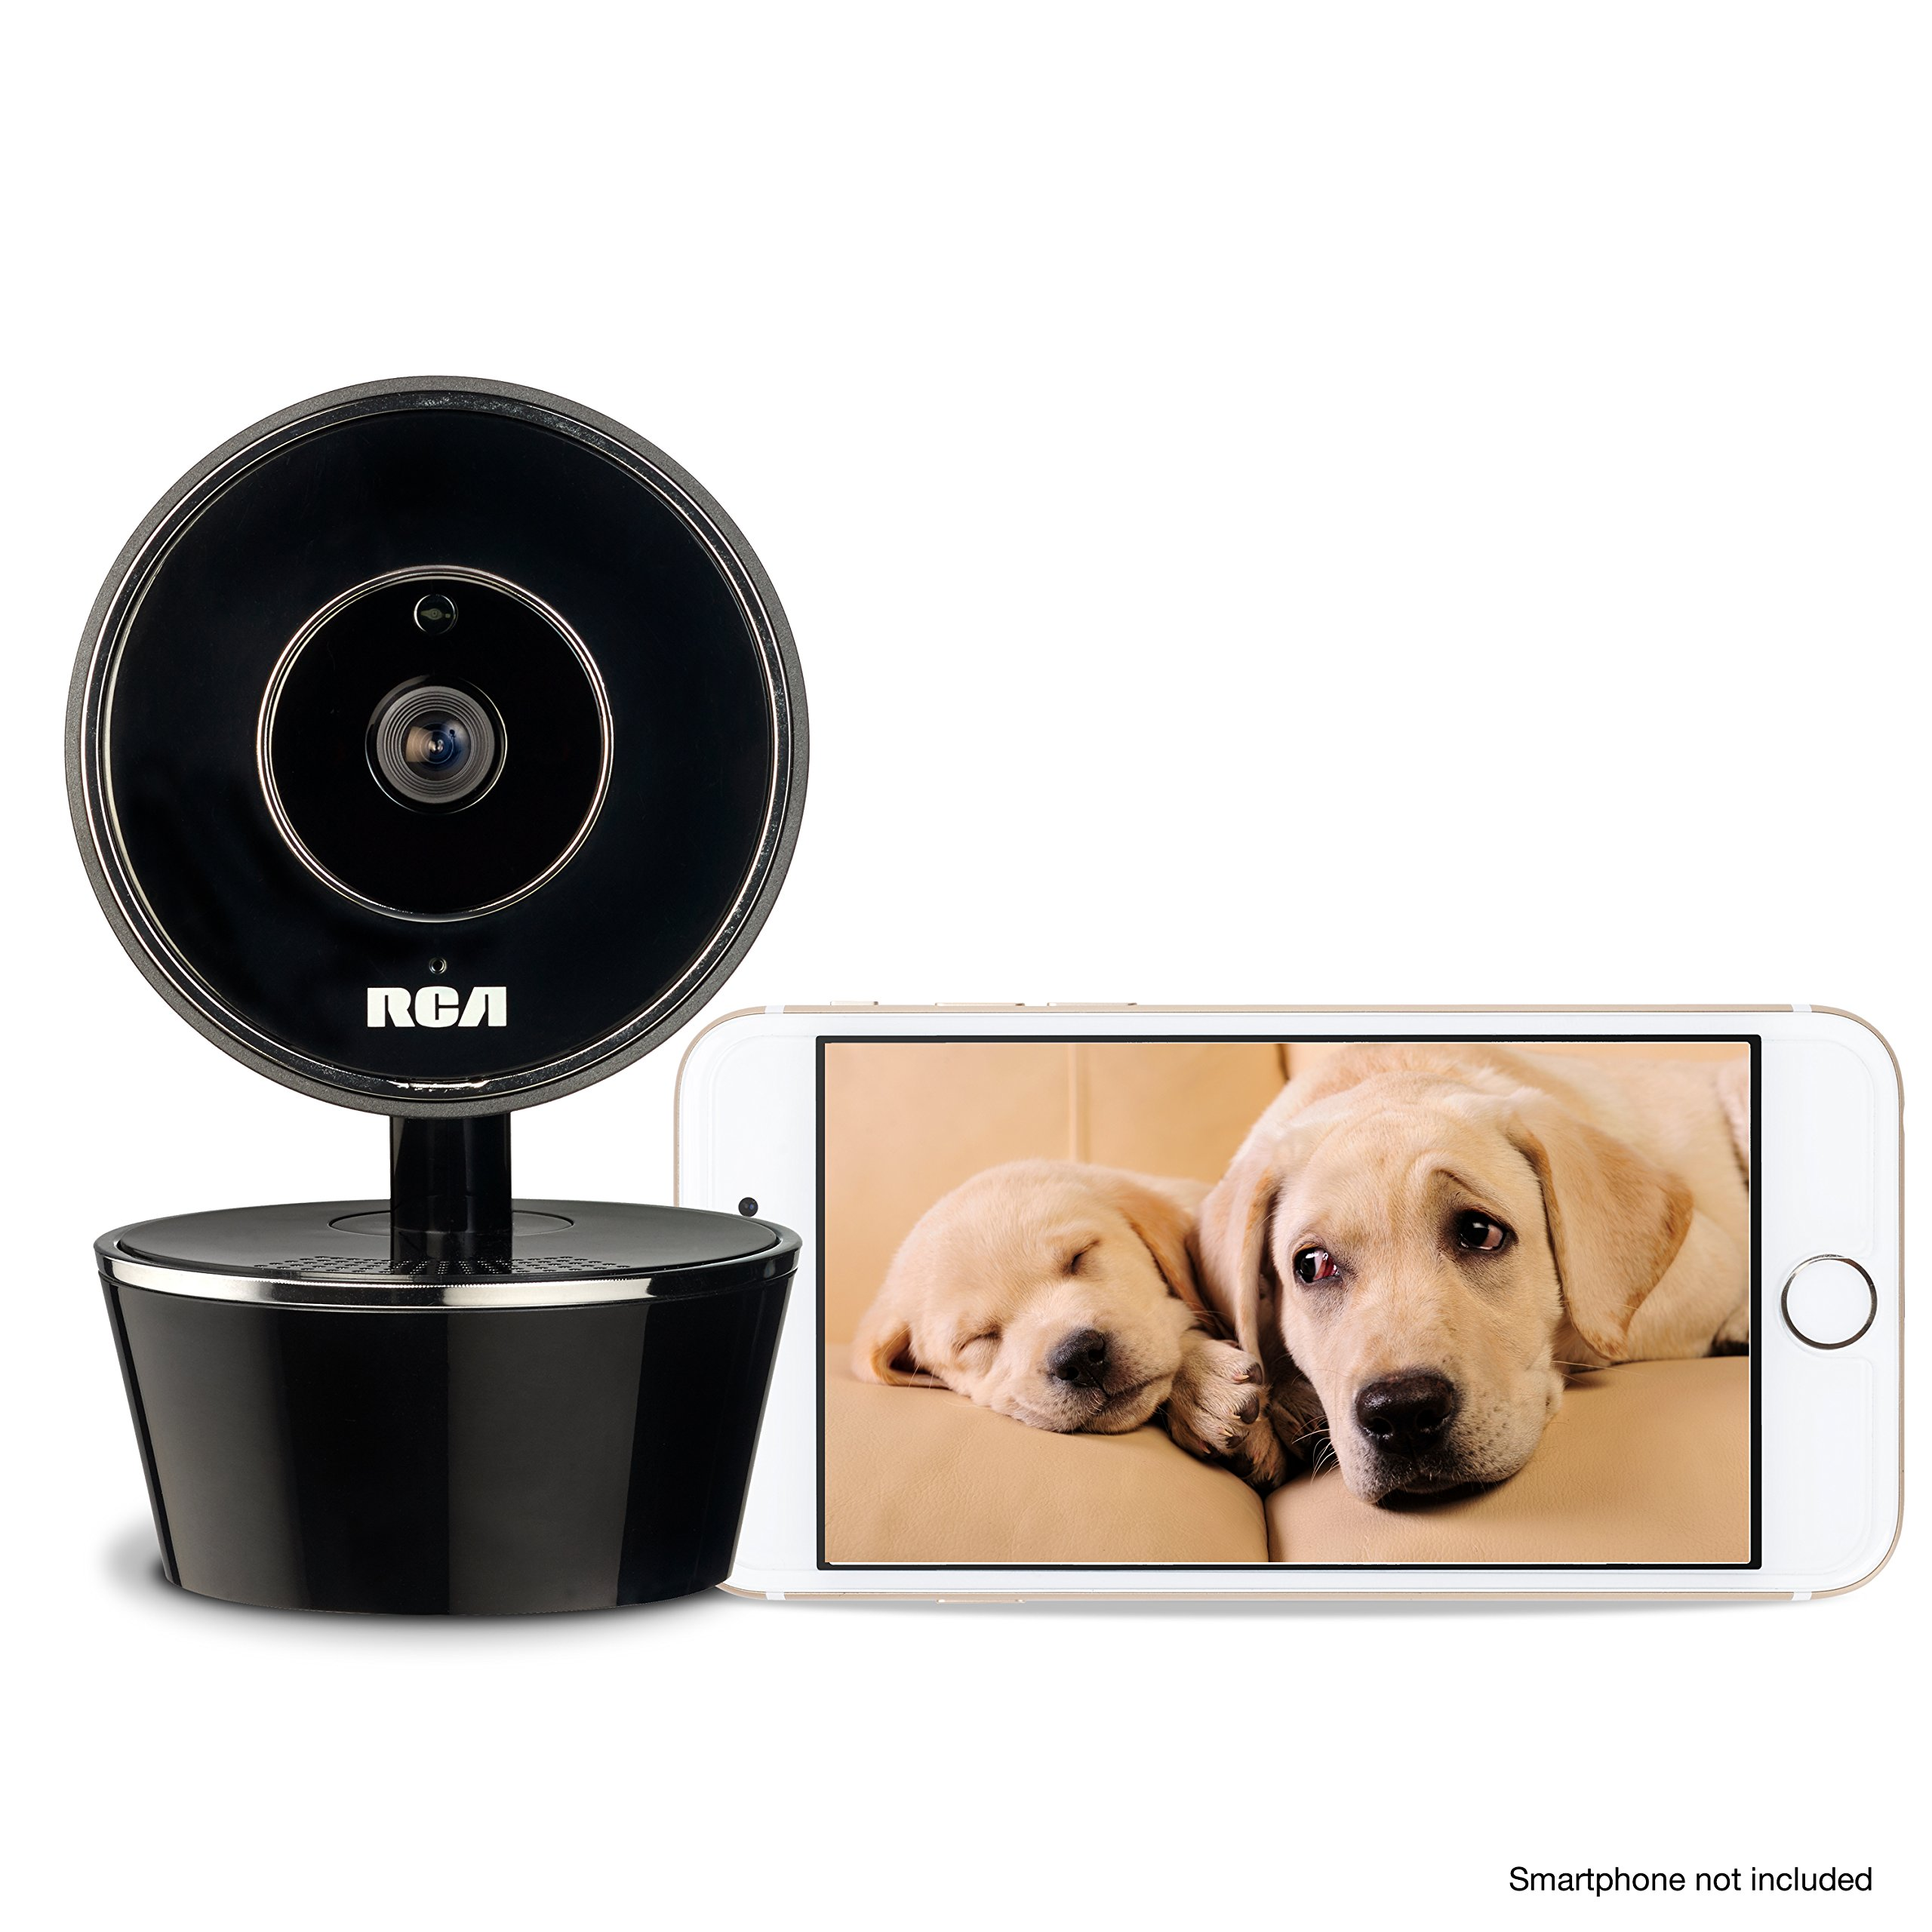 RCA Pet Camera for Dog & Cat Parents - WiFi Pet Security Camera with HD Video, 2 Way Audio, Night Vision, Motion & Sound Alerts & Phone App to Monitor & Talk to Your Pets, White, Small by RCA